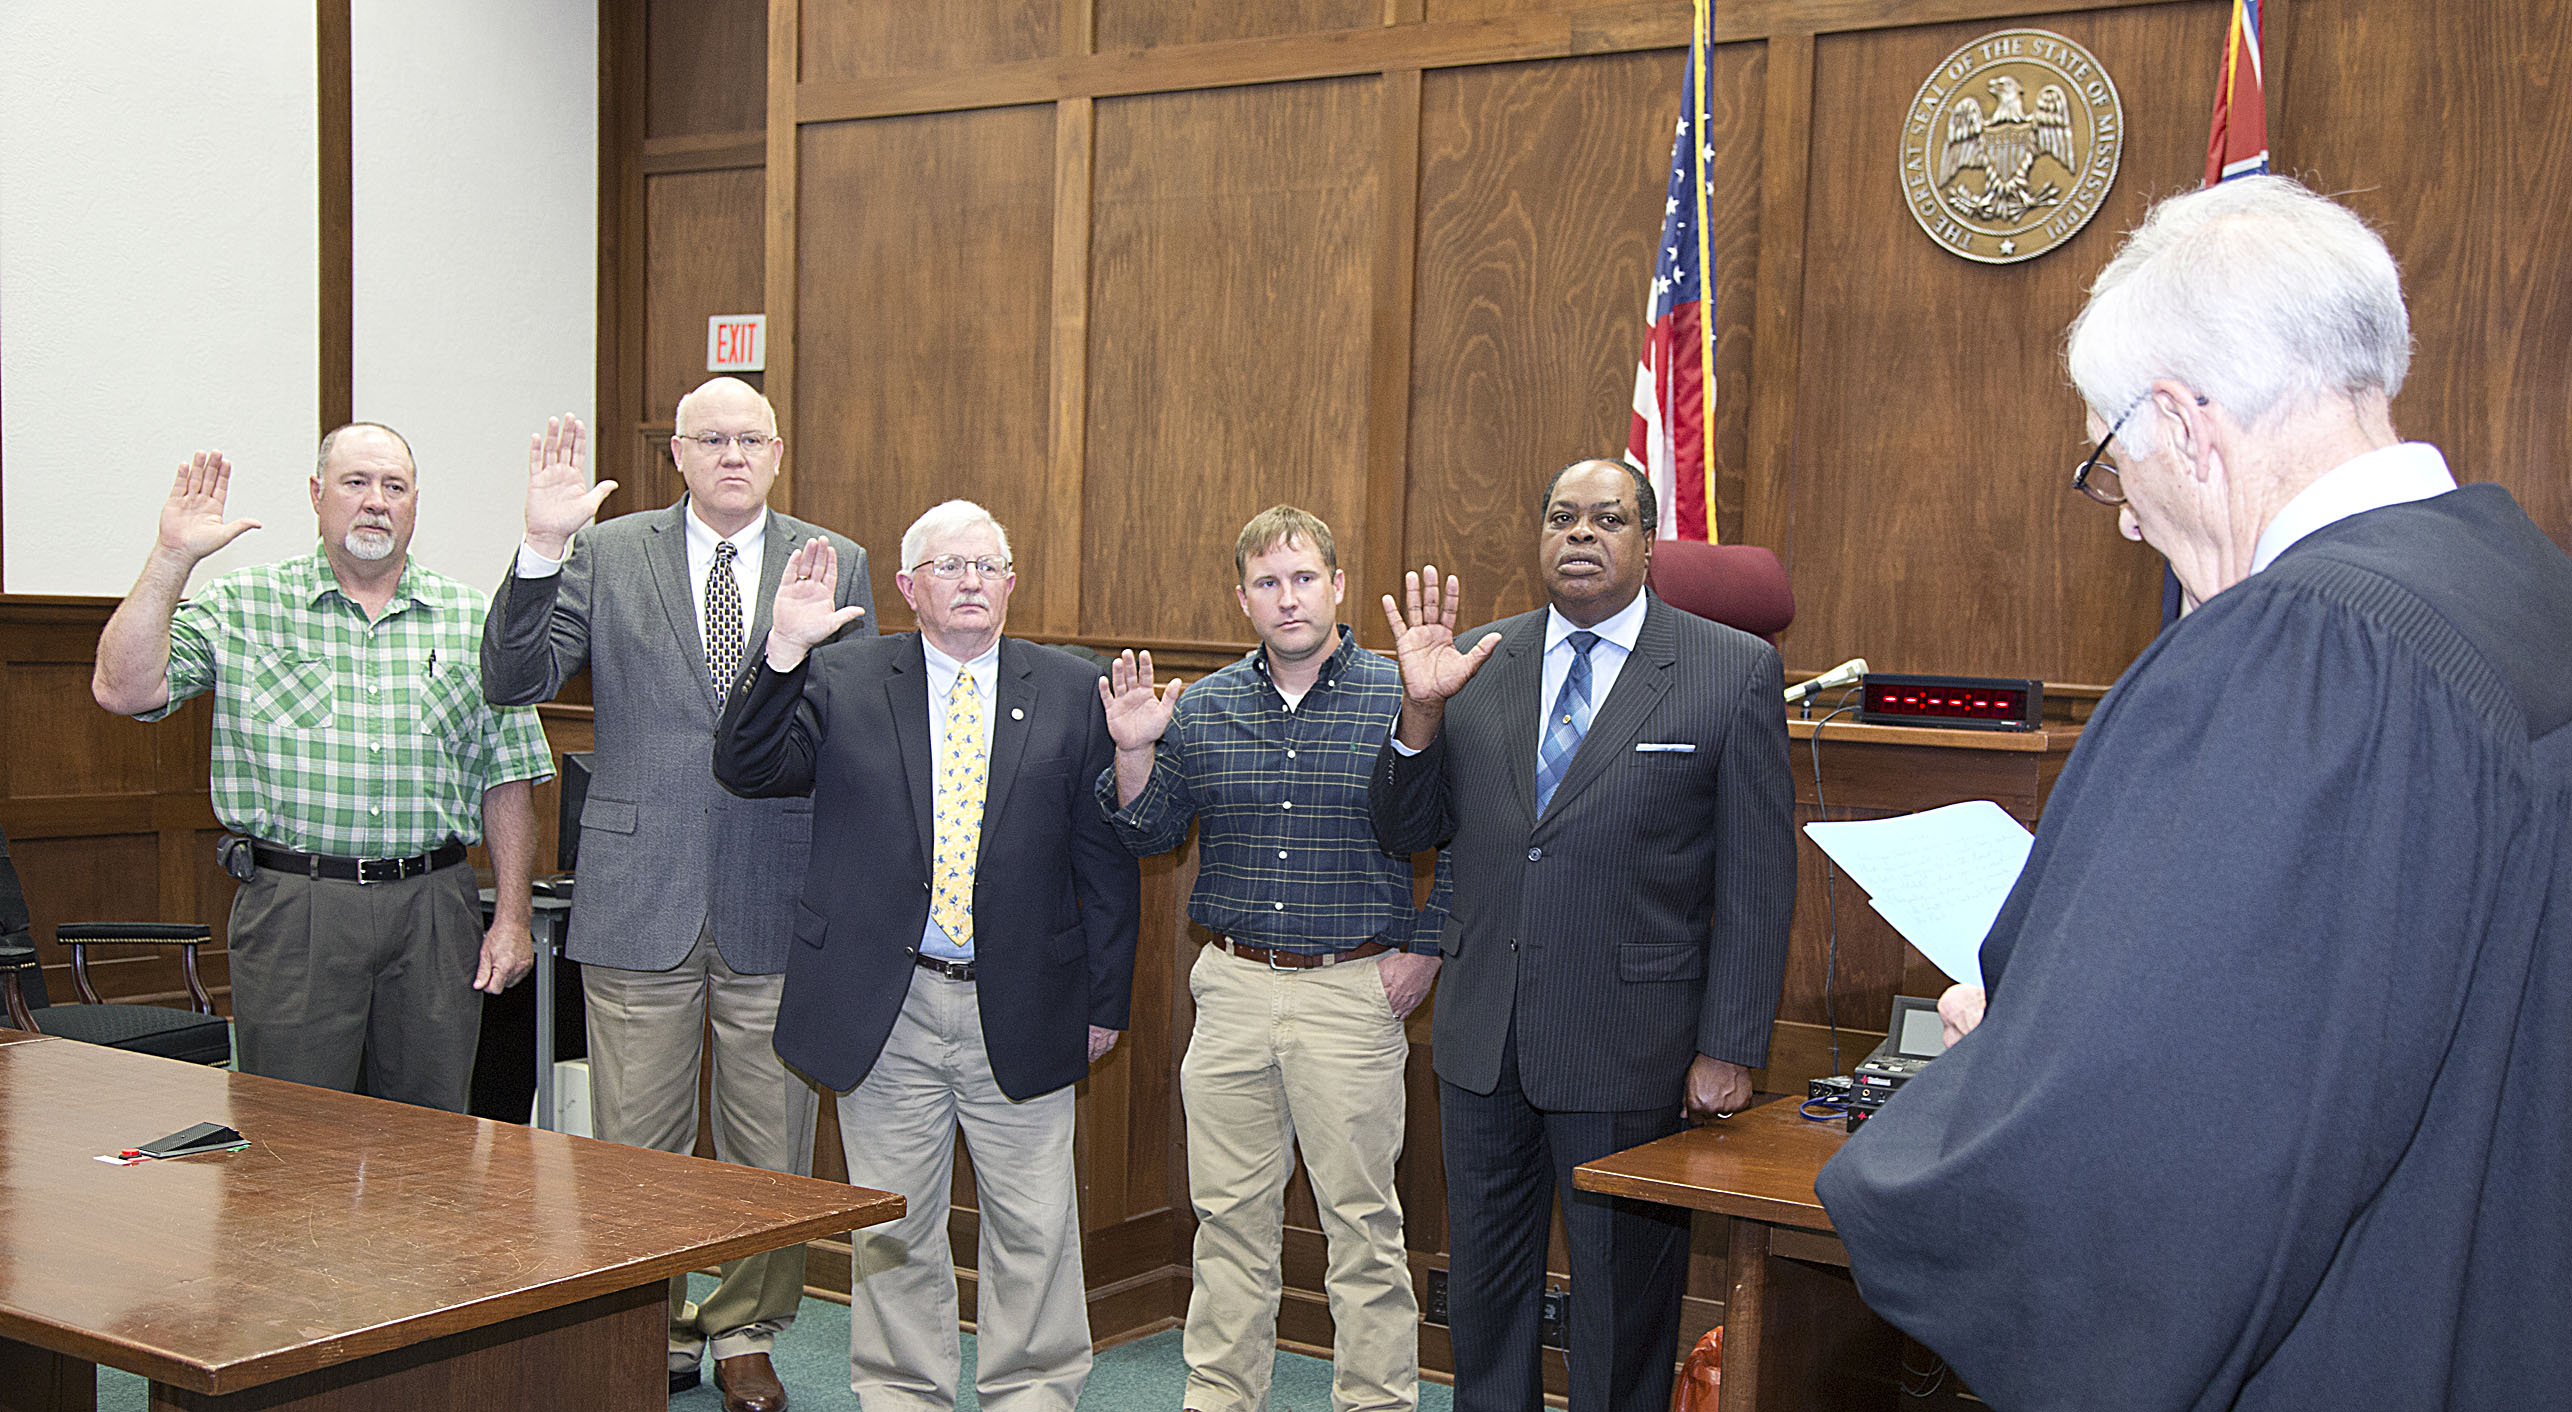 Mississippi scott county sebastopol - Scsd Board Members Taking The Oath Of Office From Judge Vernon R Cotton April 21 2015